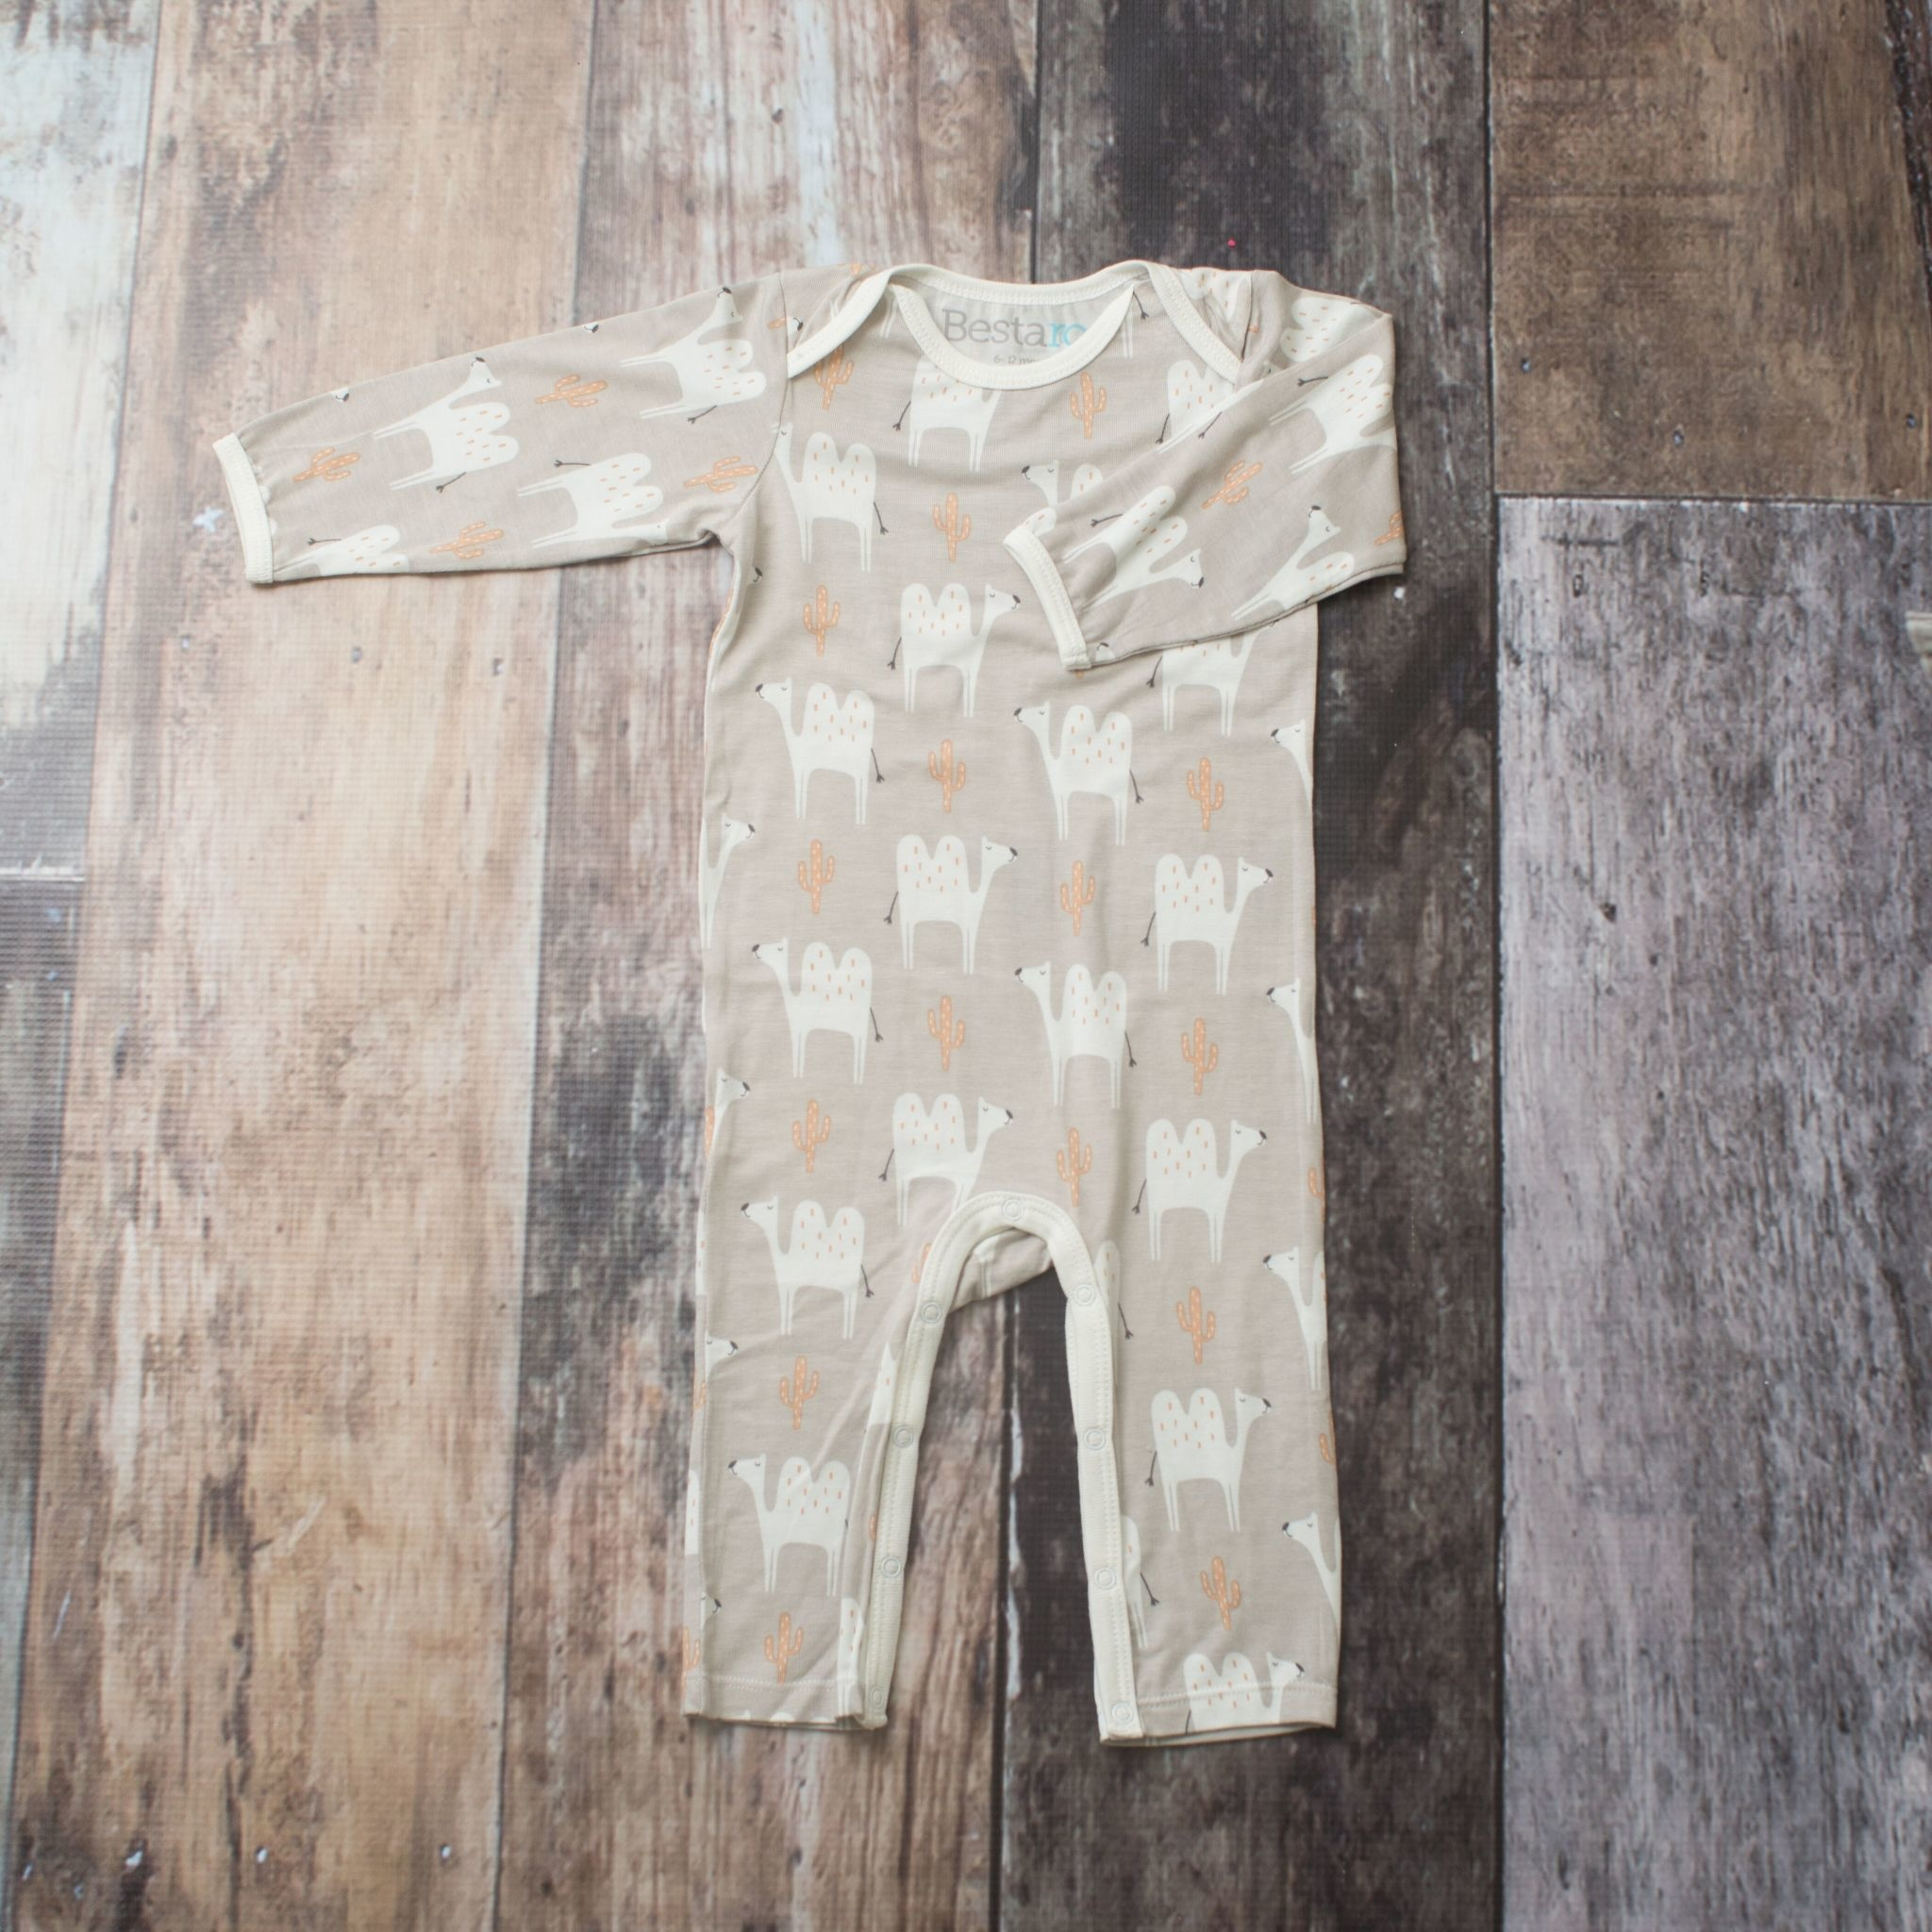 Bestaroo Coverall Camels Tan/Gray